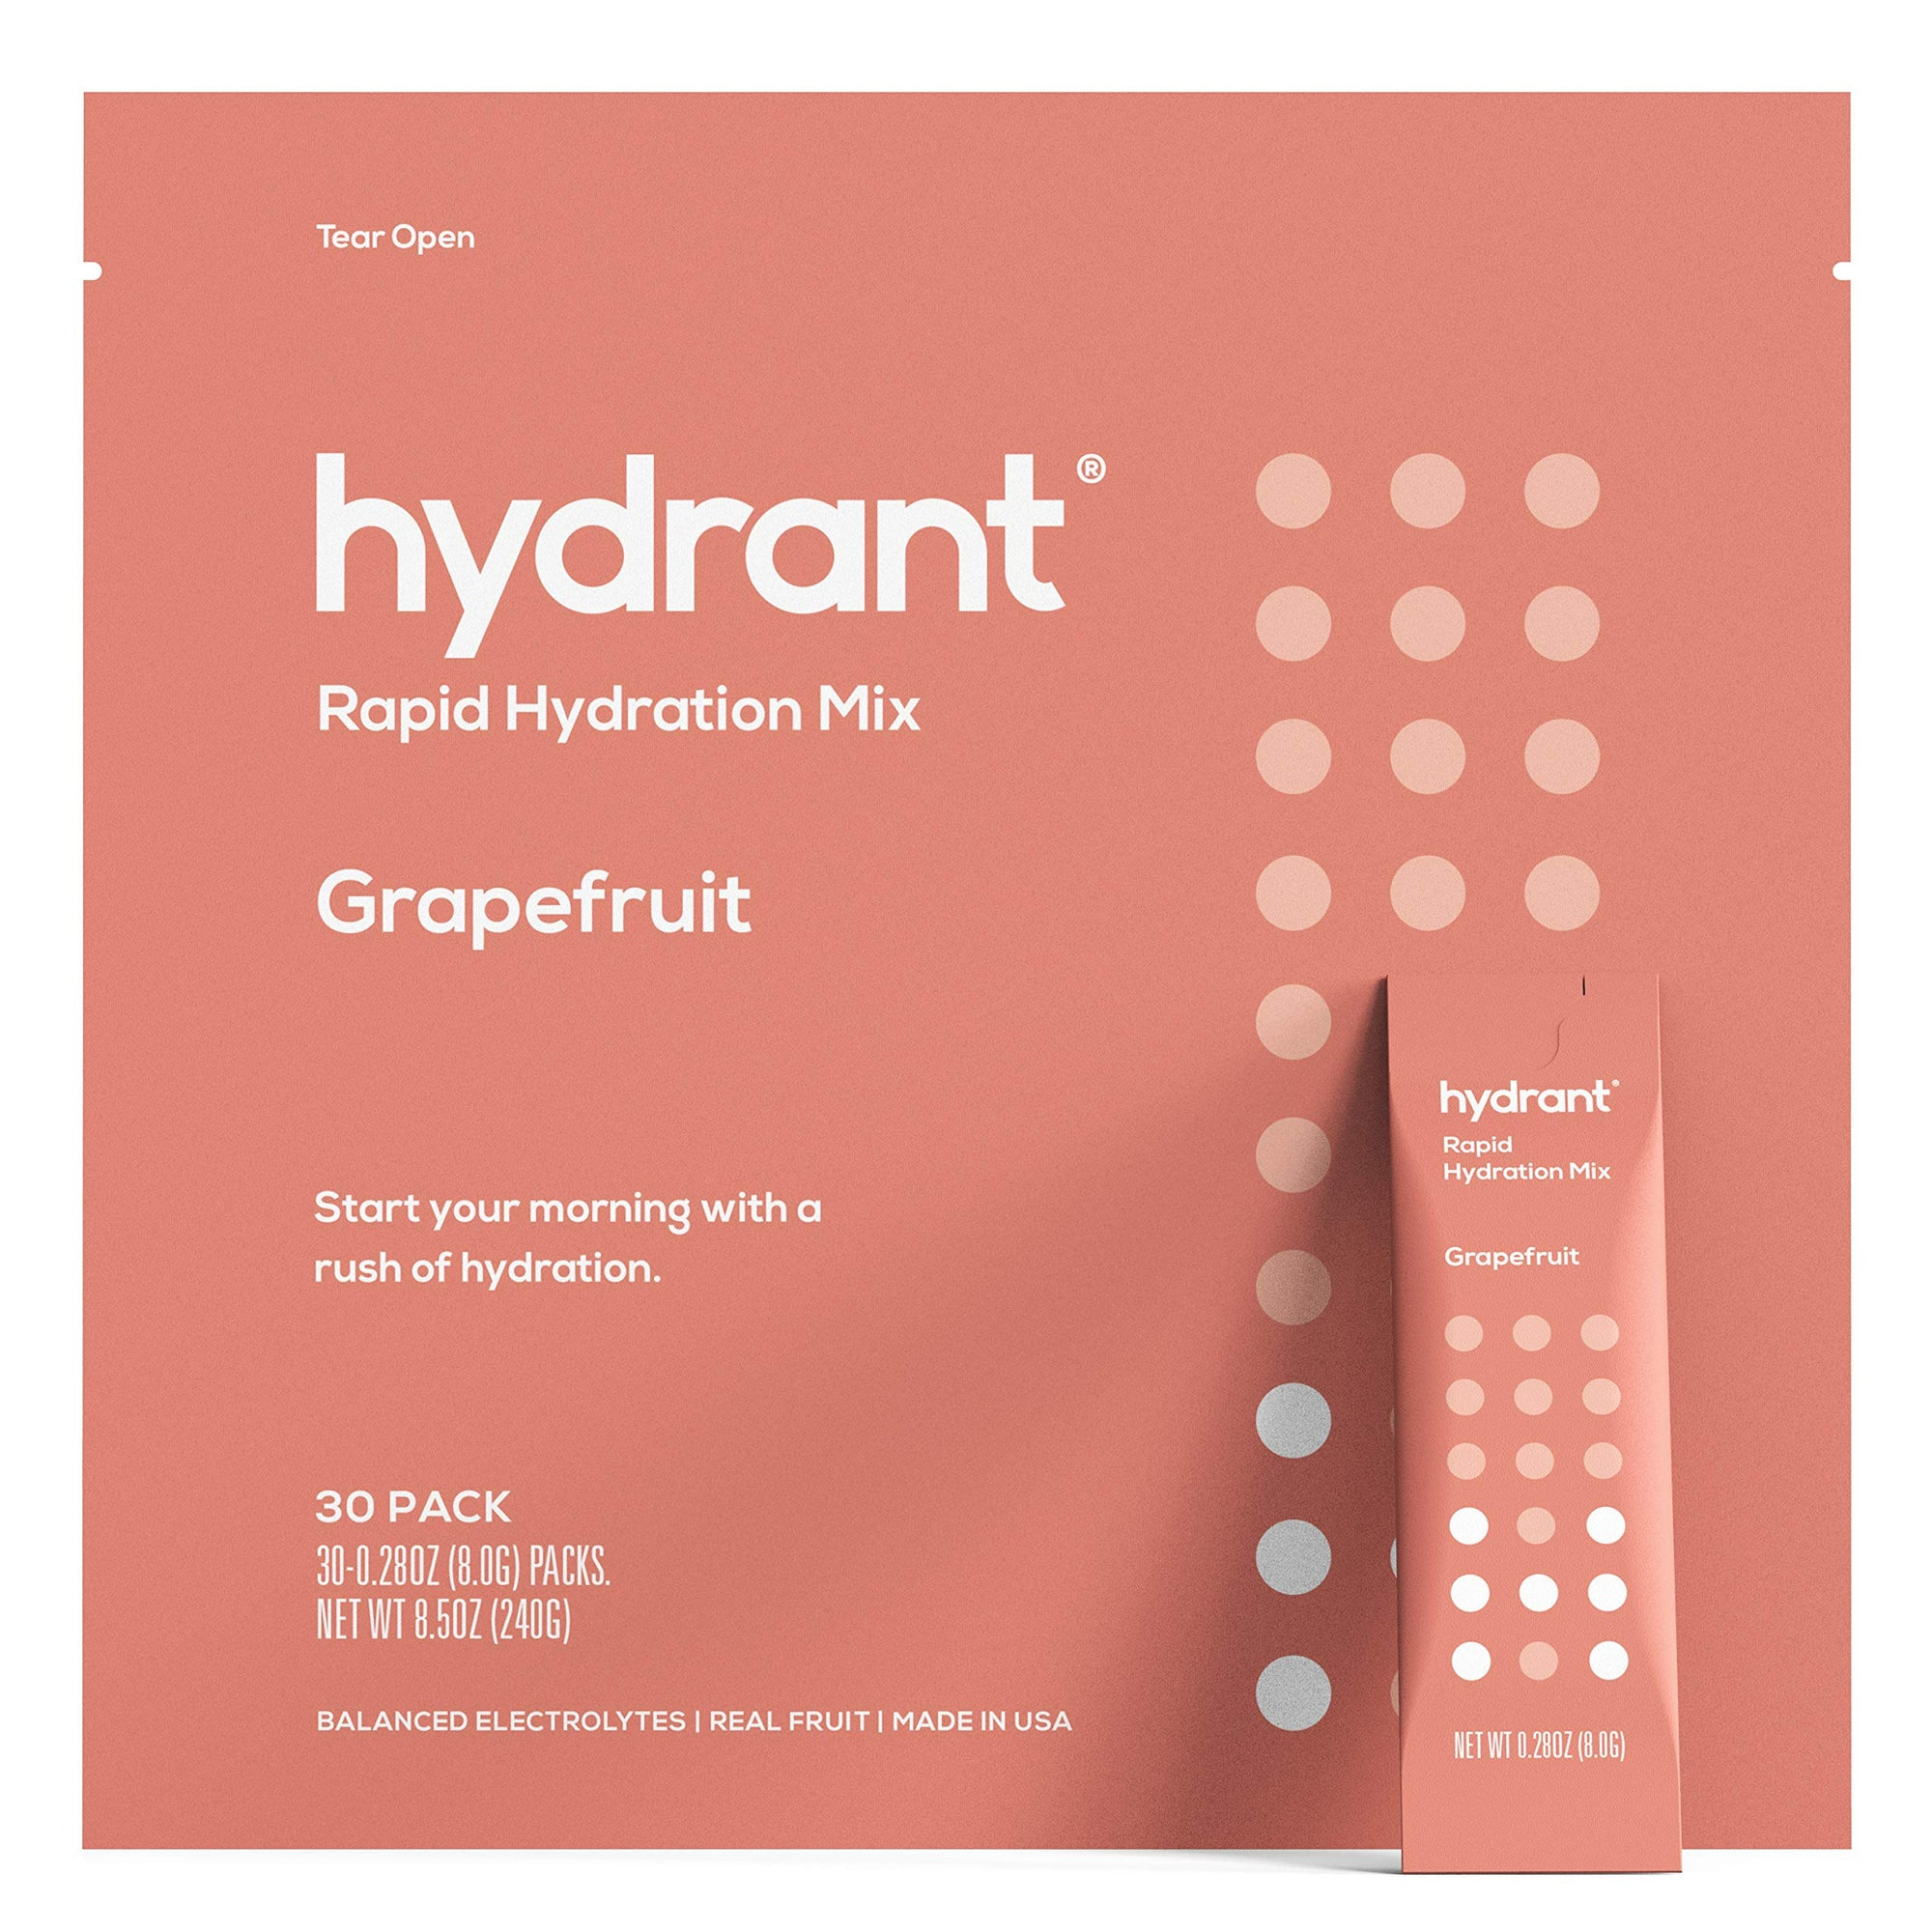 Hydrant Grapefruit Rapid Hydration Mix Version 2 | Electrolyte Powder | Dehydration Recovery Drink - 30pk